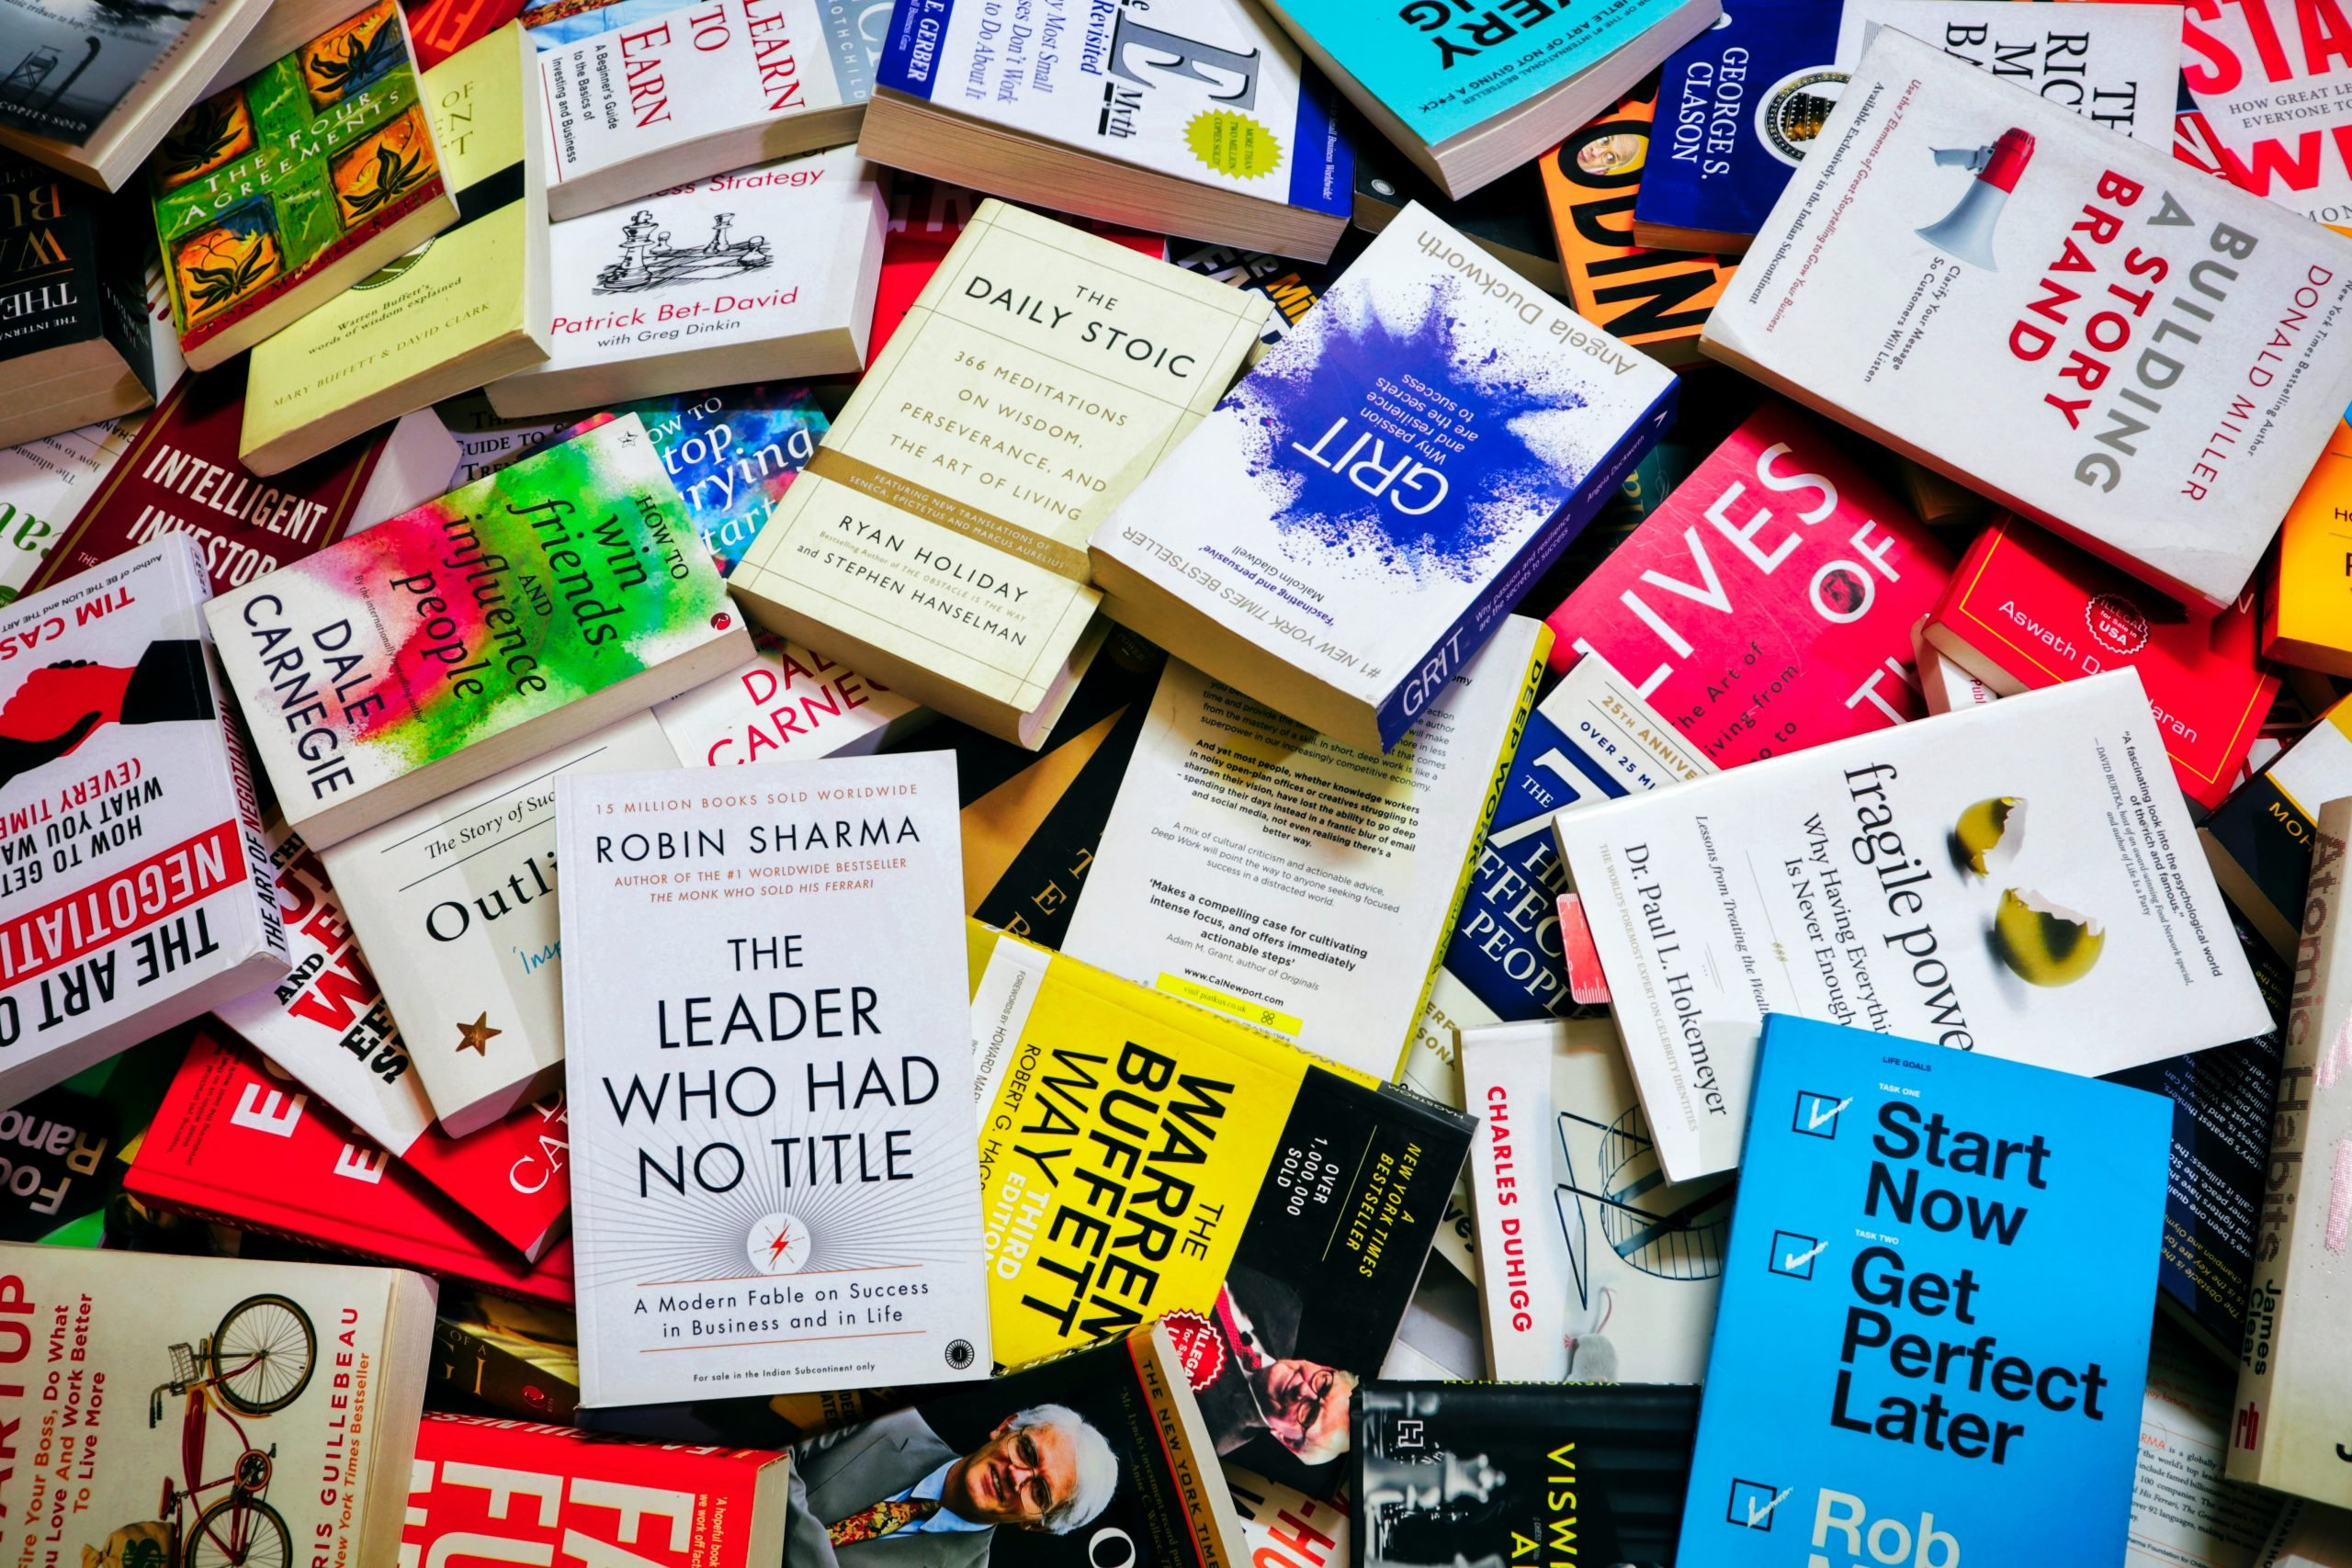 Best Self-Help Books to Guide You Through Life